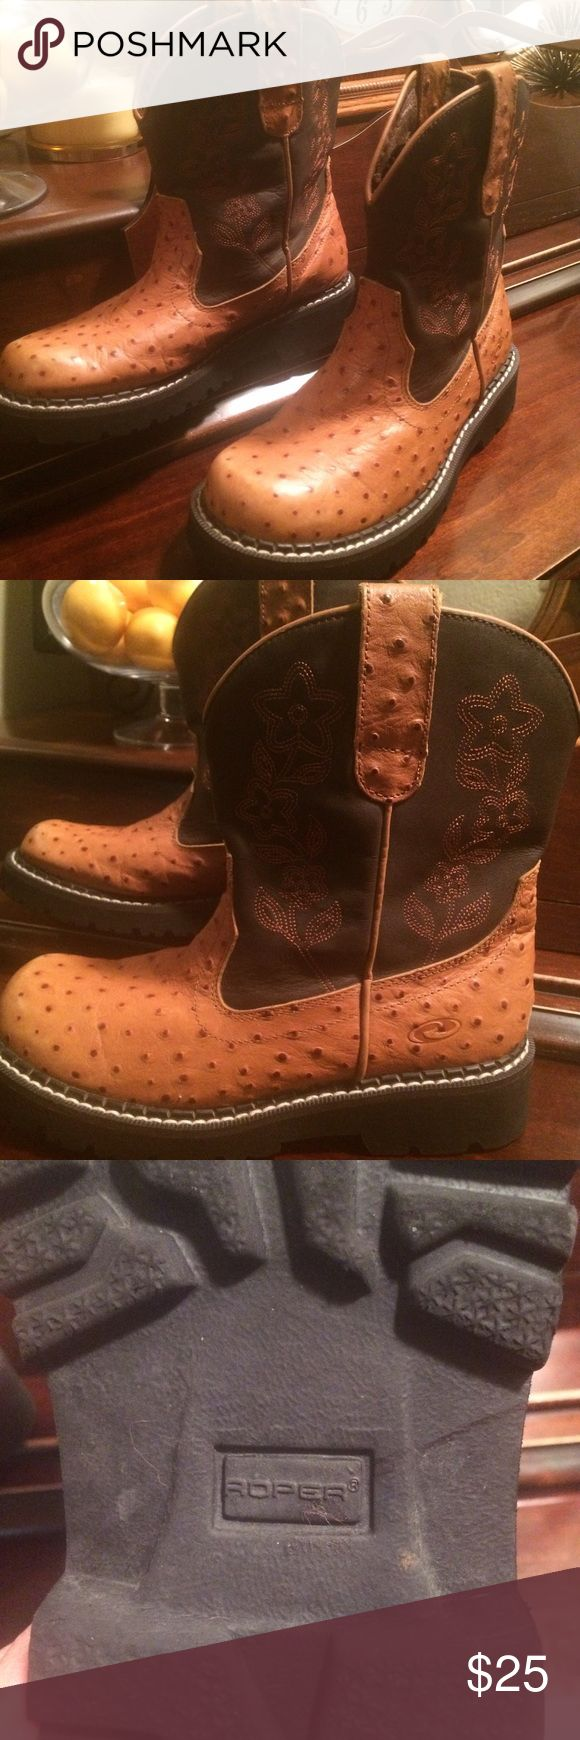 Women's Ostrich Roper boots Ostrich boots in great condition. Very comfortable. Roper Shoes Ankle Boots & Booties